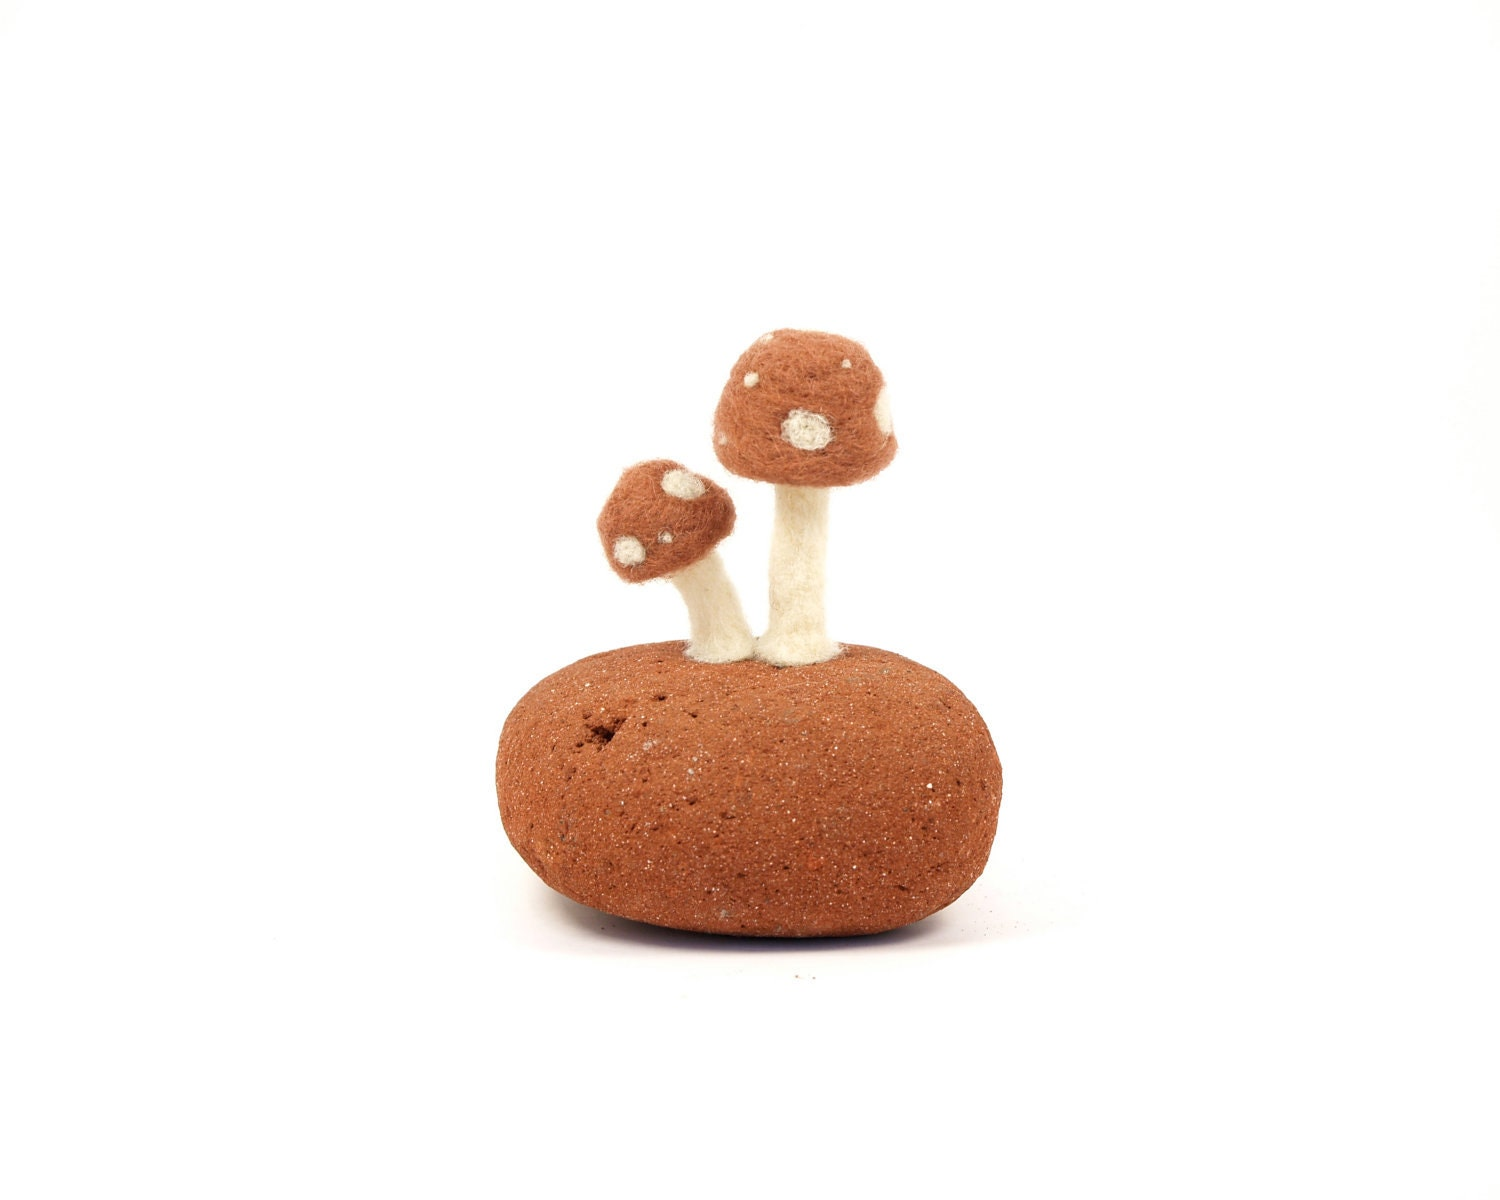 Brown Toadstool and Red Terracotta Sea Brick Art Sculpture, Needle Felted Wool and real sea brick, Whimsical Woodland Scene Fathers Day Gift - Fairyfolk